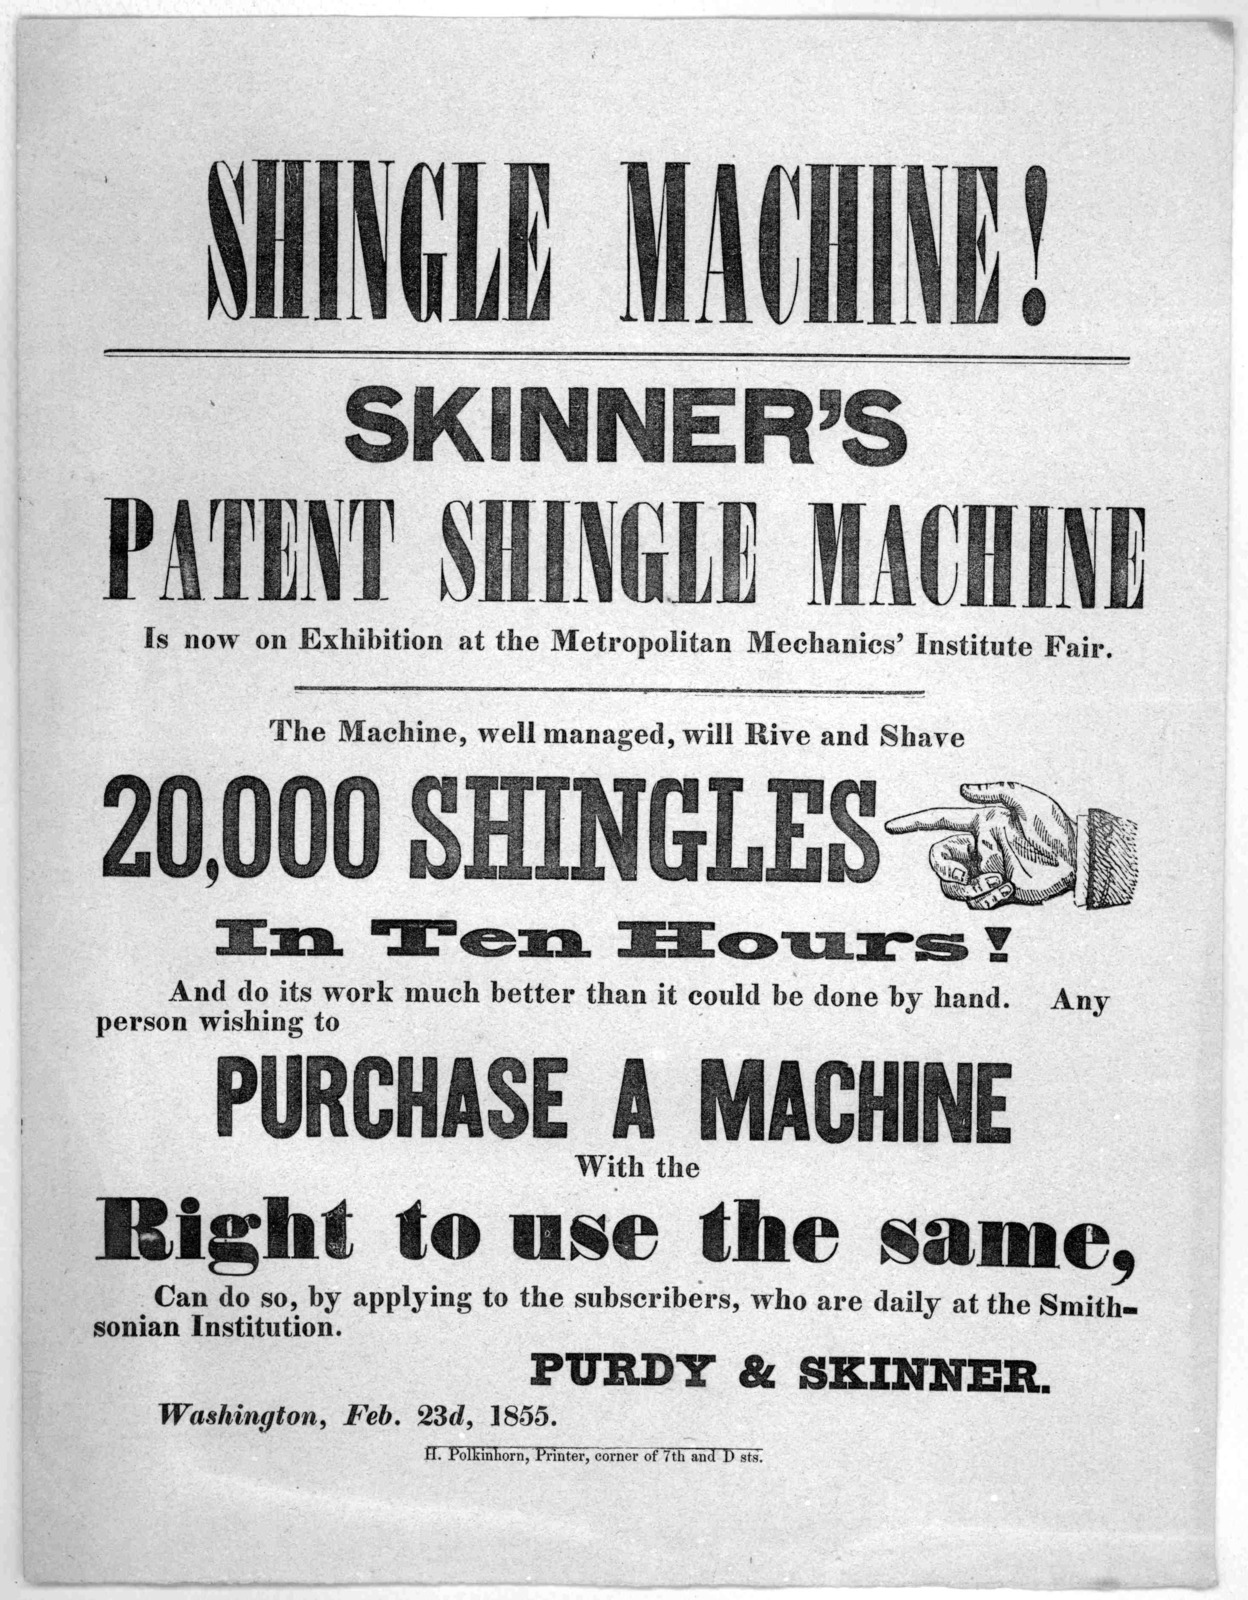 Shingle machine! Skinner's patent shingle machine is now on exhibition at the Metropolitan Mechanics' Institute fair. The machine, well managed, will rive and shave 20,000 shingles in ten hours ... Purdy & Skinner. Washington, Feb. 23d. 1855. H.